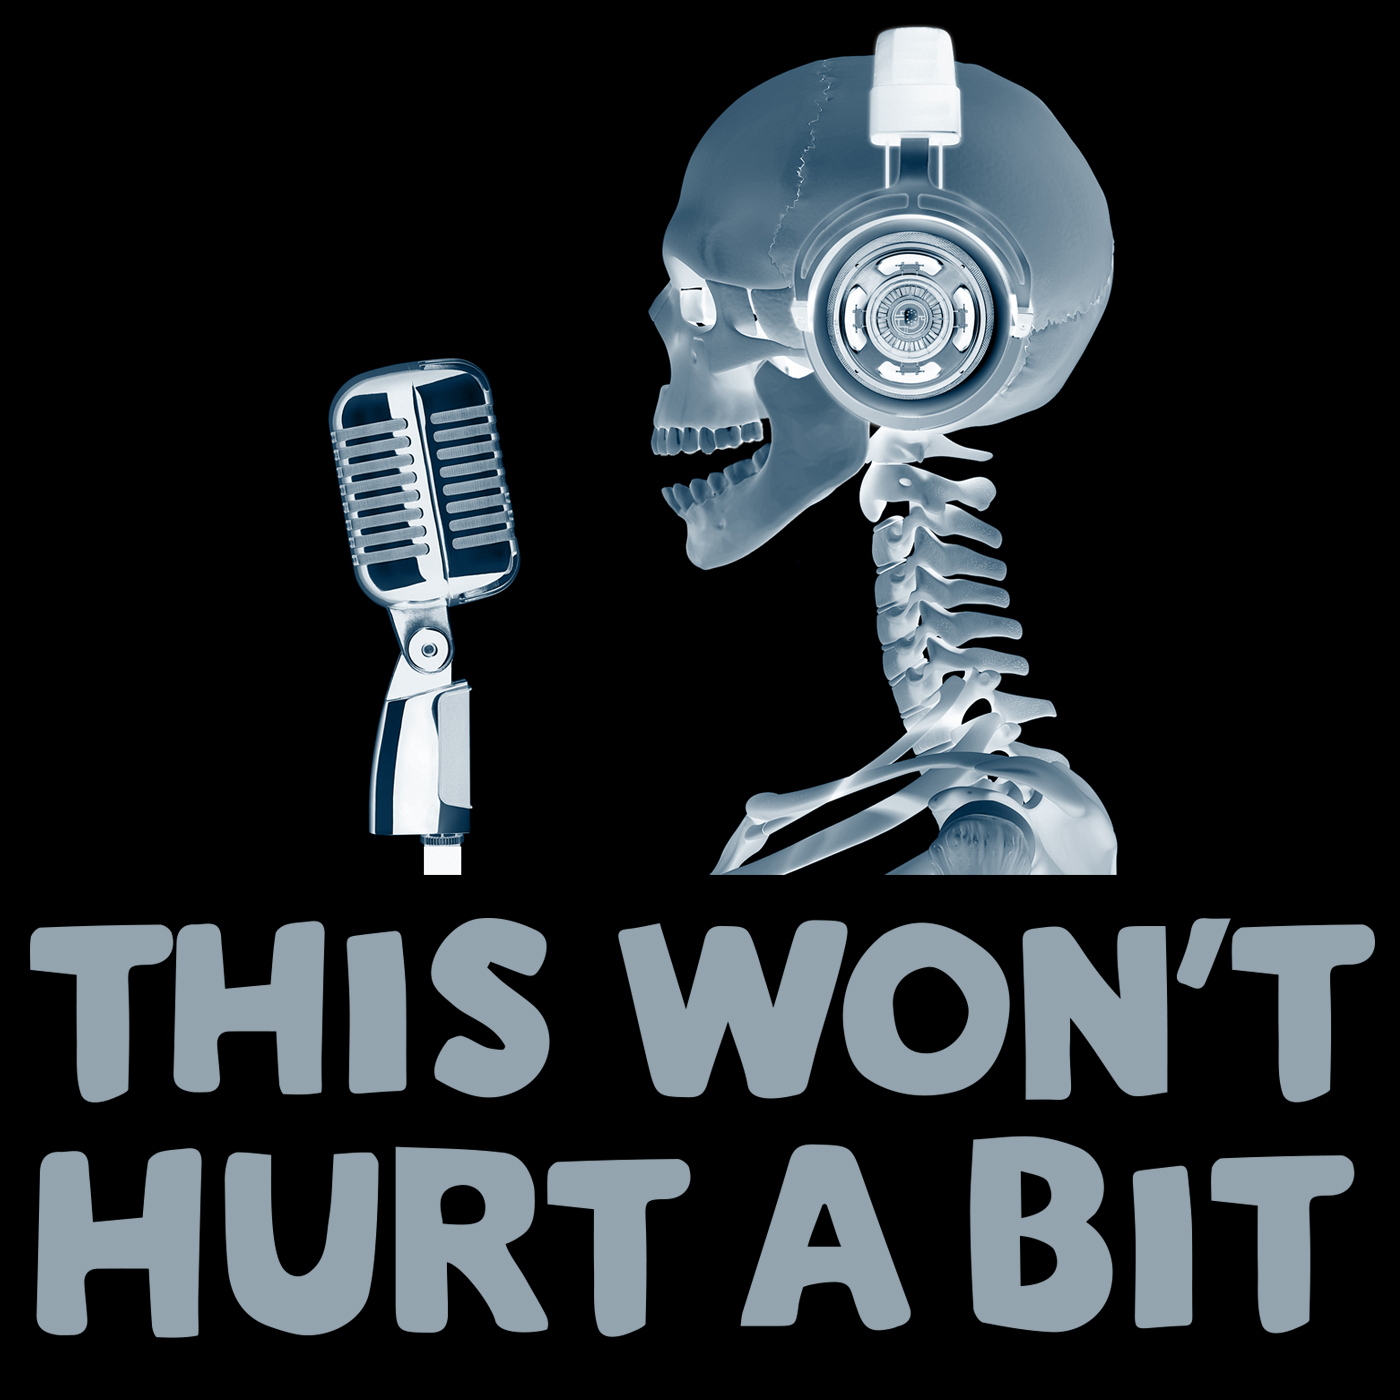 Caption: The medical podcast for your cortex and your funny bone, Credit: Foolyboo Inc